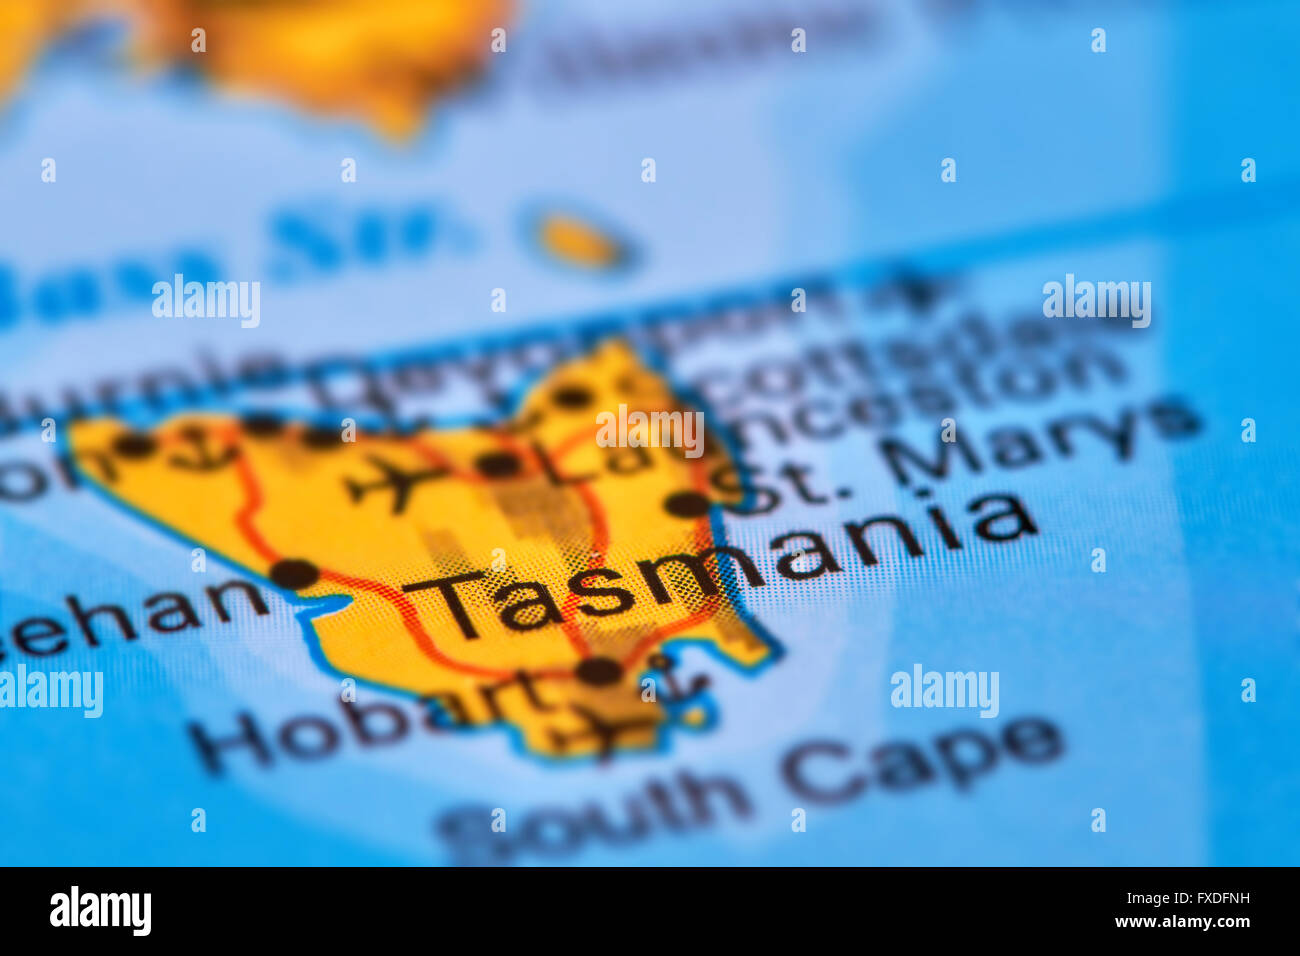 Tasmania Island In Australia On The World Map Stock Photo 102330637